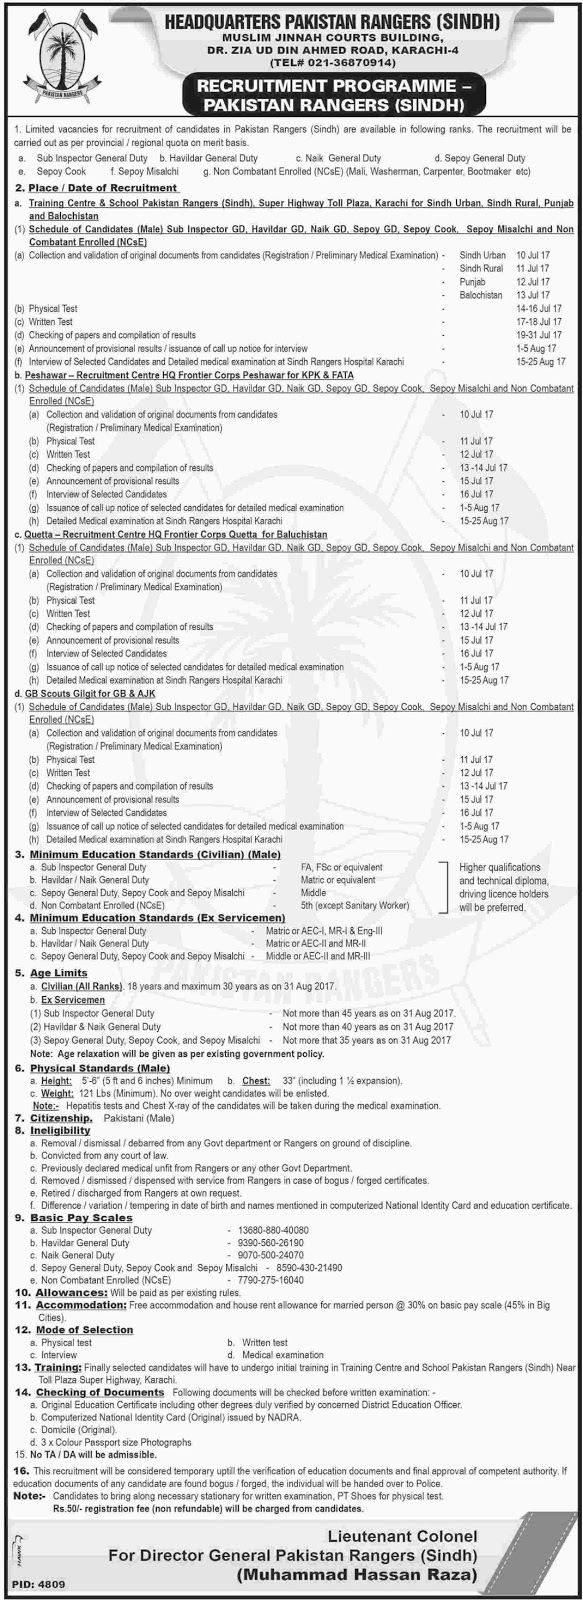 Sub-Inspector, Hawaldar & other Jobs In Pakistan Rangers Headquarter Sindh 25 June 2017